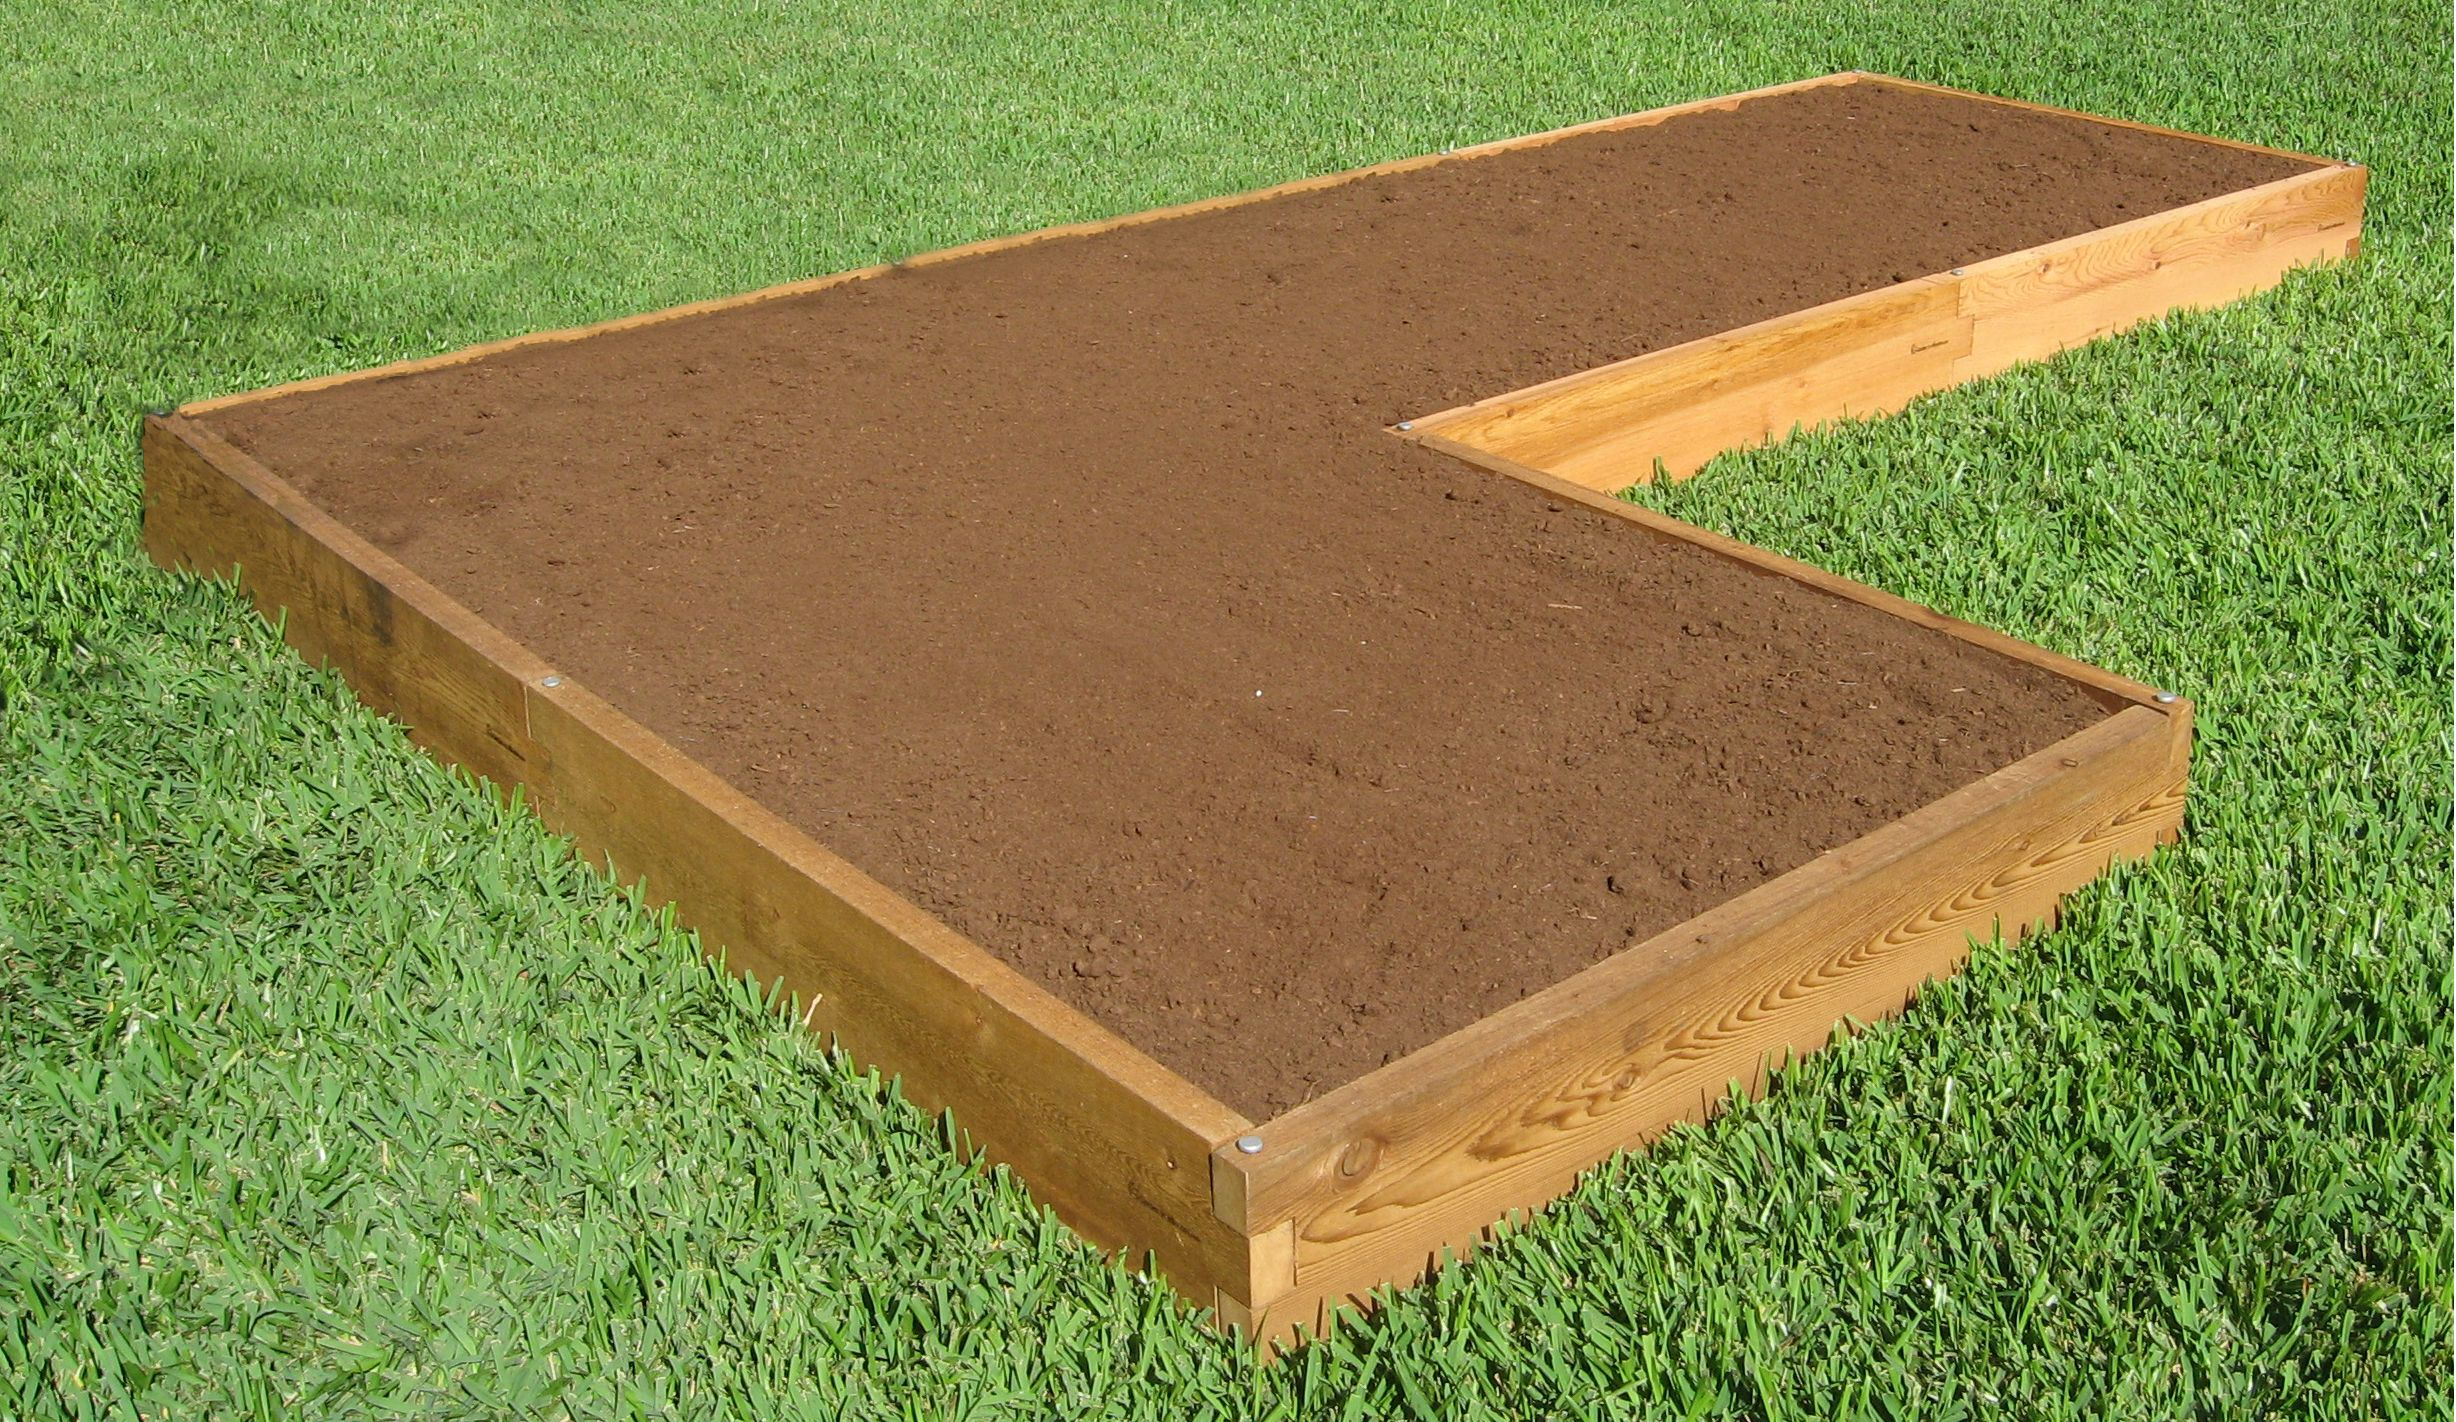 The L Shaped Raised Garden Bed By Gardeninminutes Com Modular